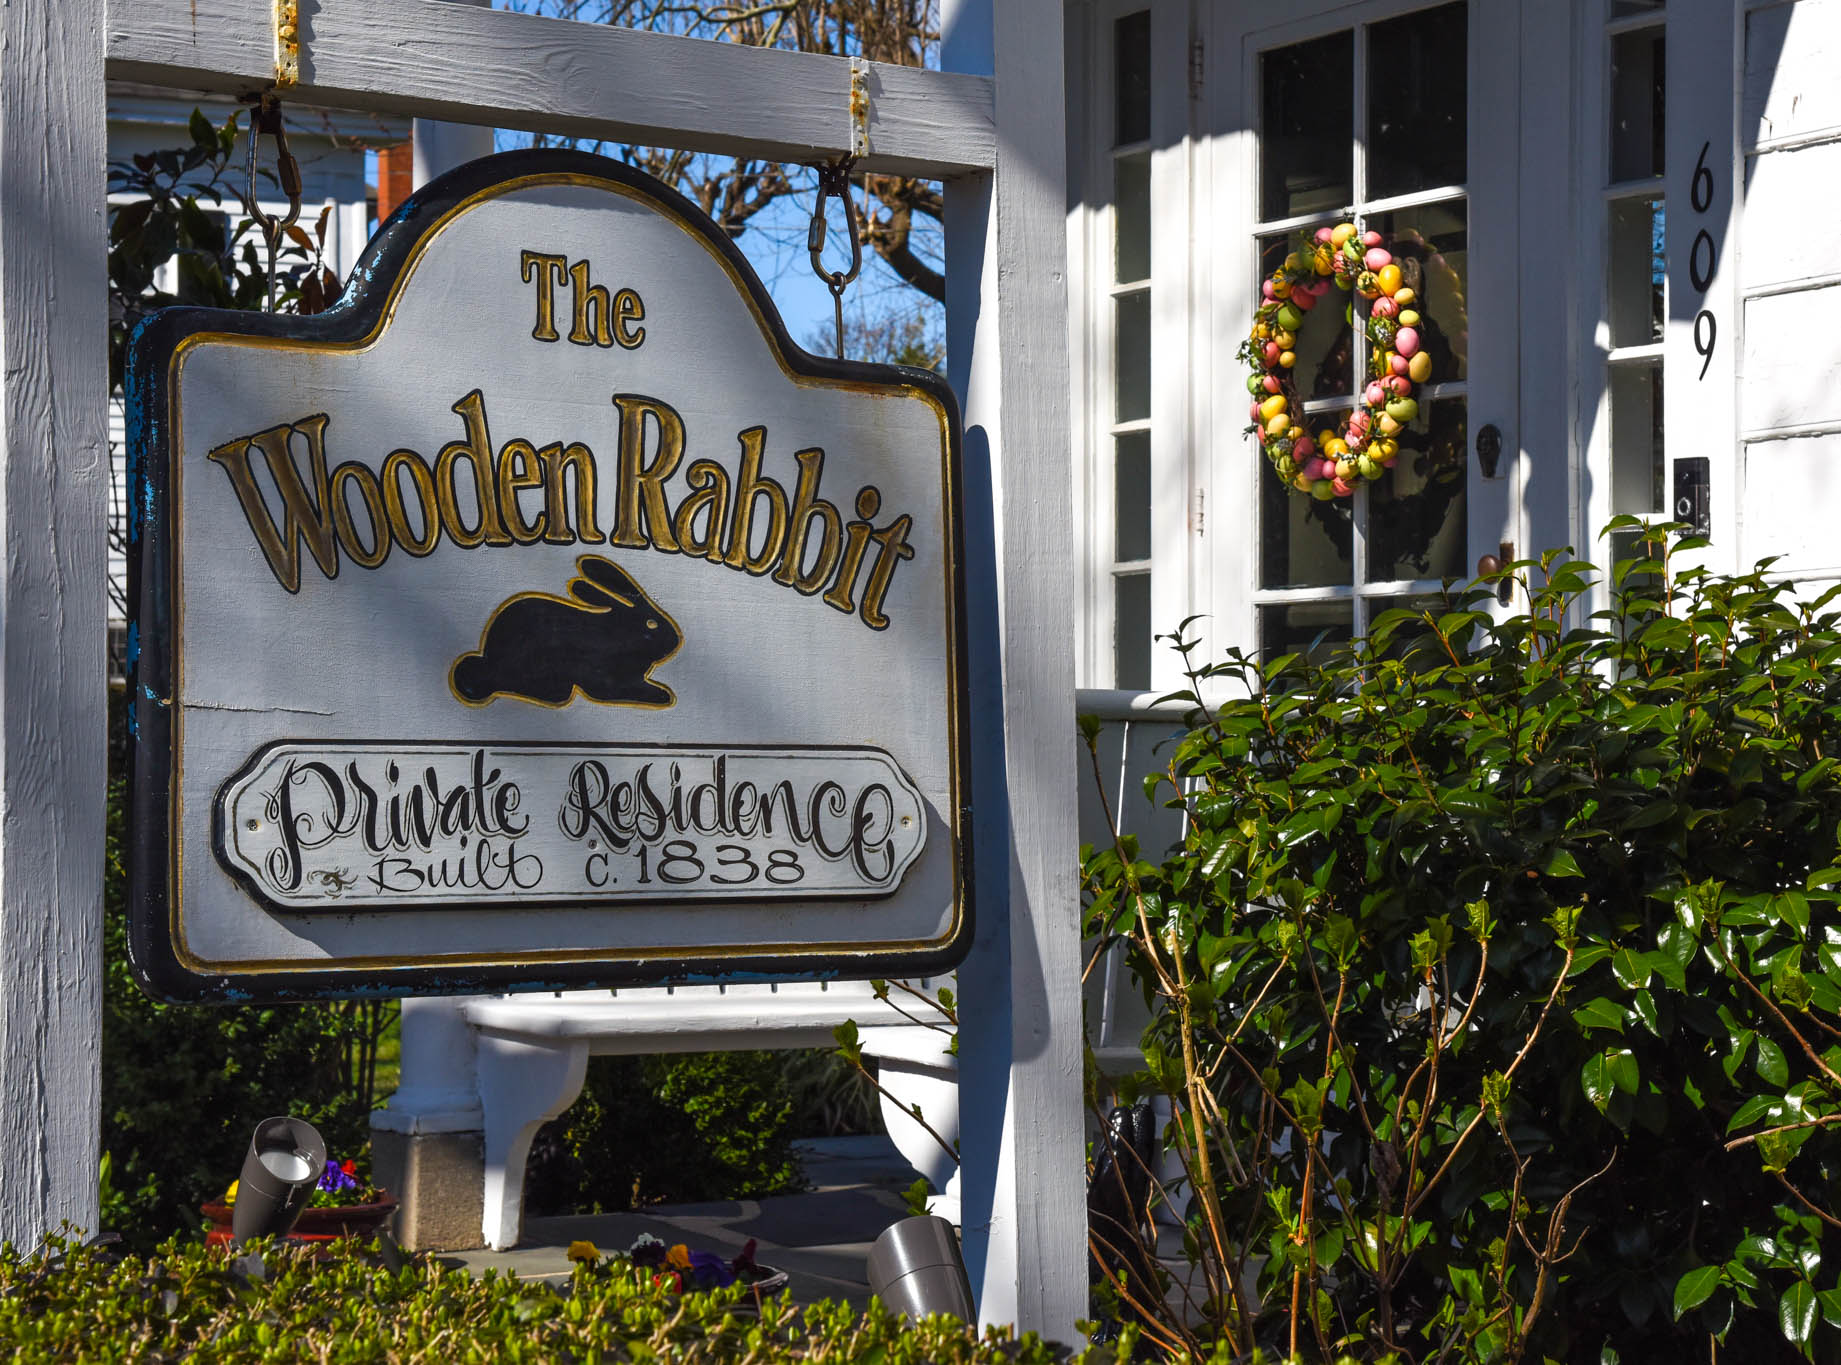 The Wooden Rabbit is A Private Residence